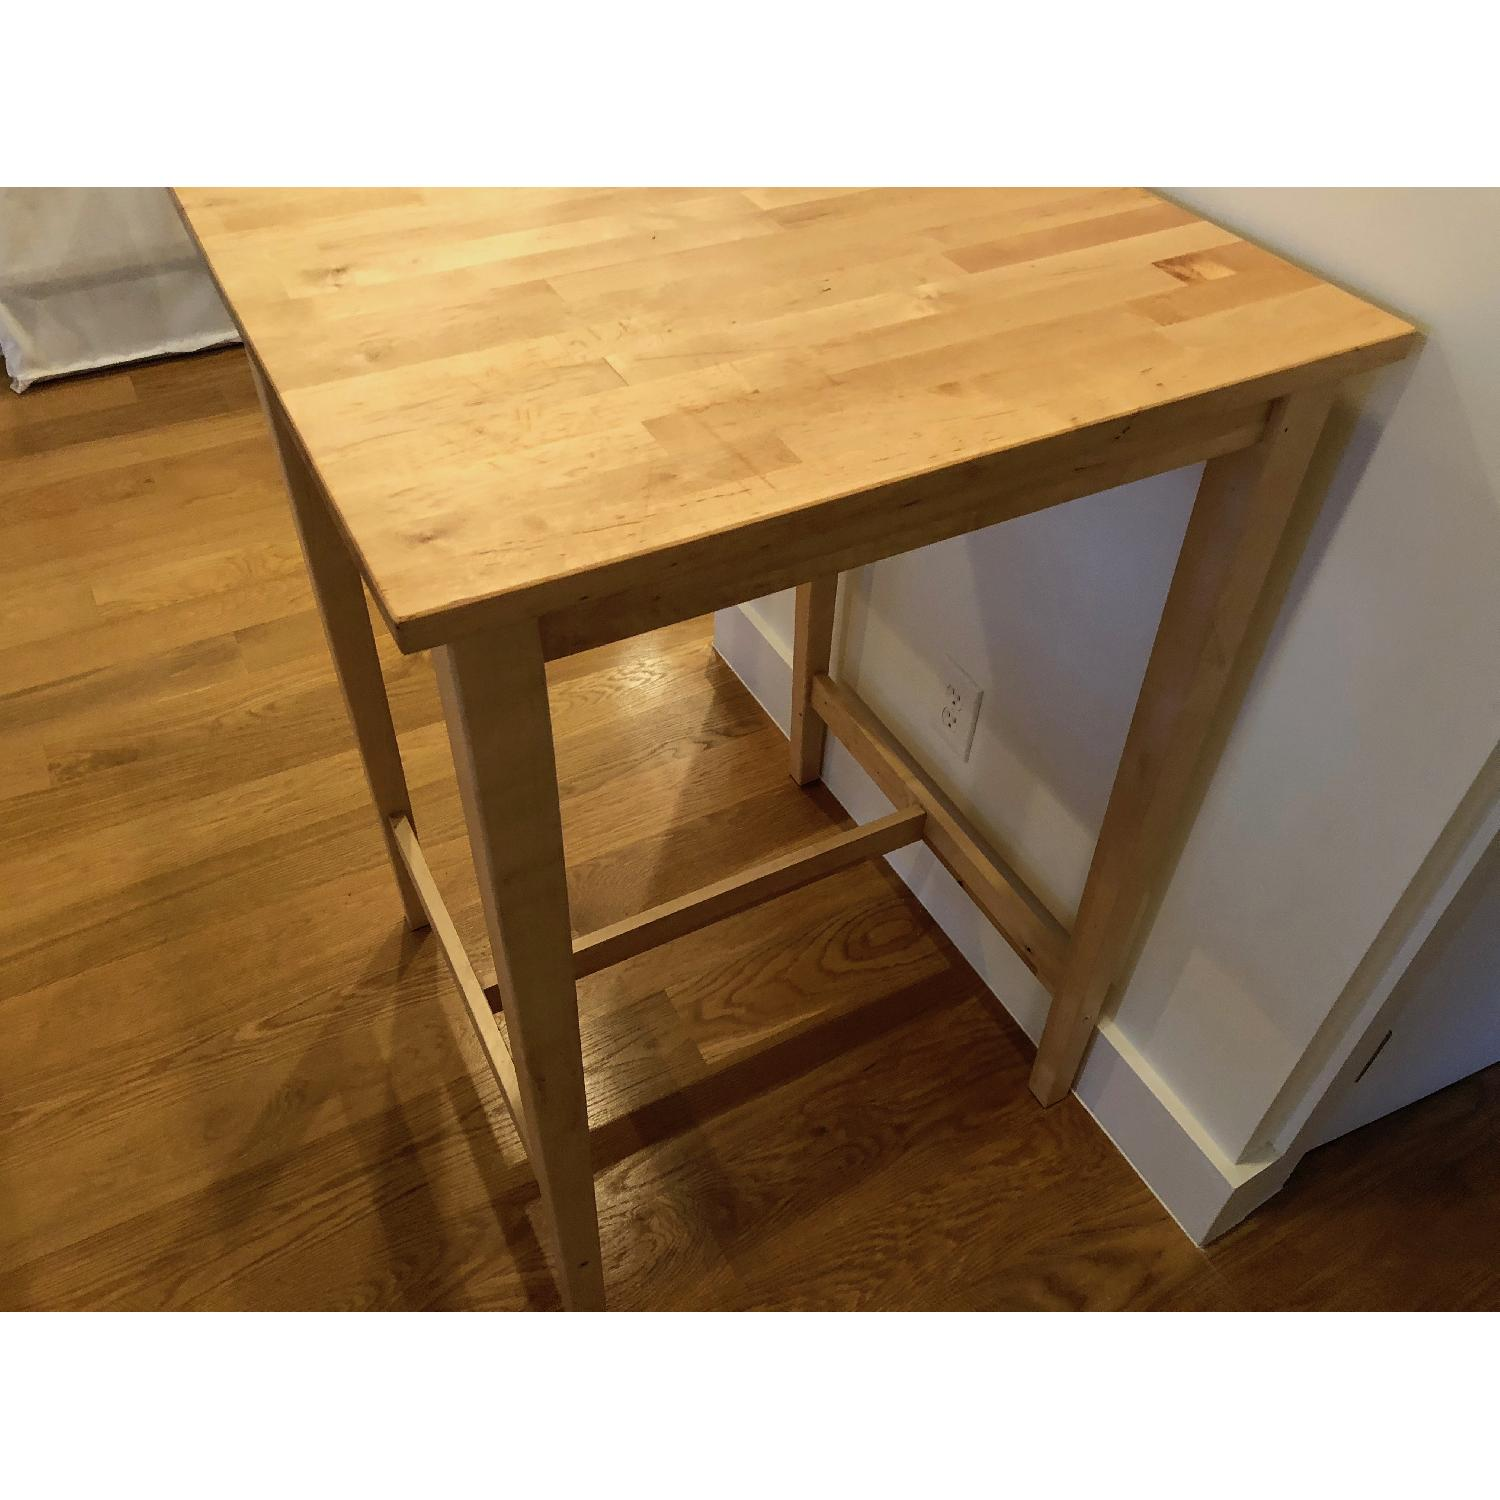 Ikea Bjorkudden Counter Height Table-1